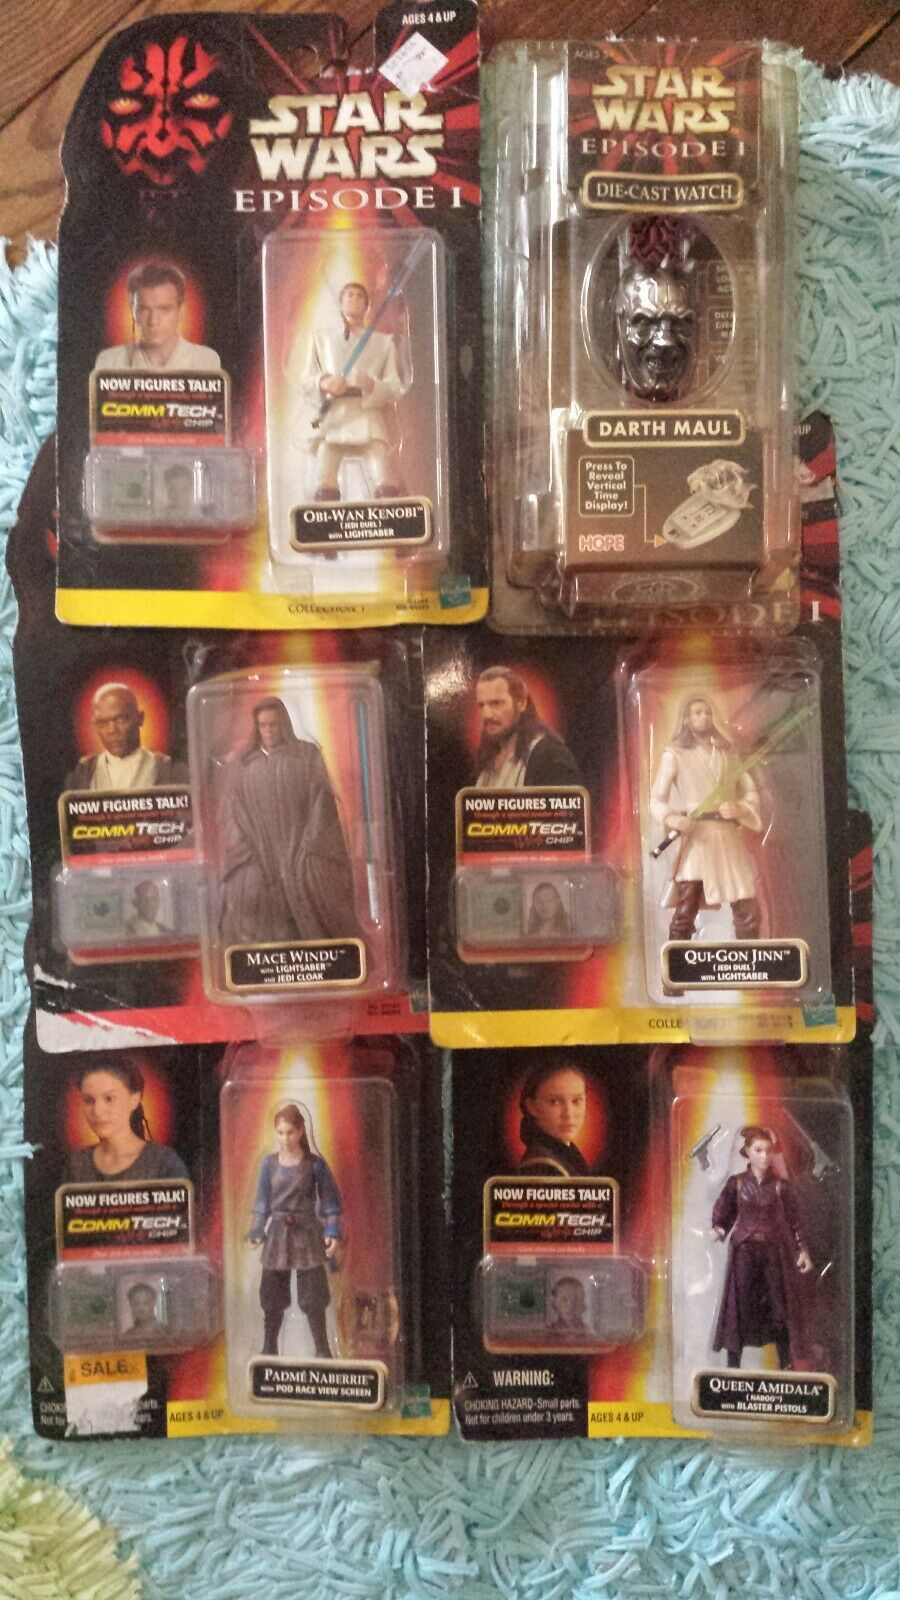 Star Wars Episode 1 action figures collection